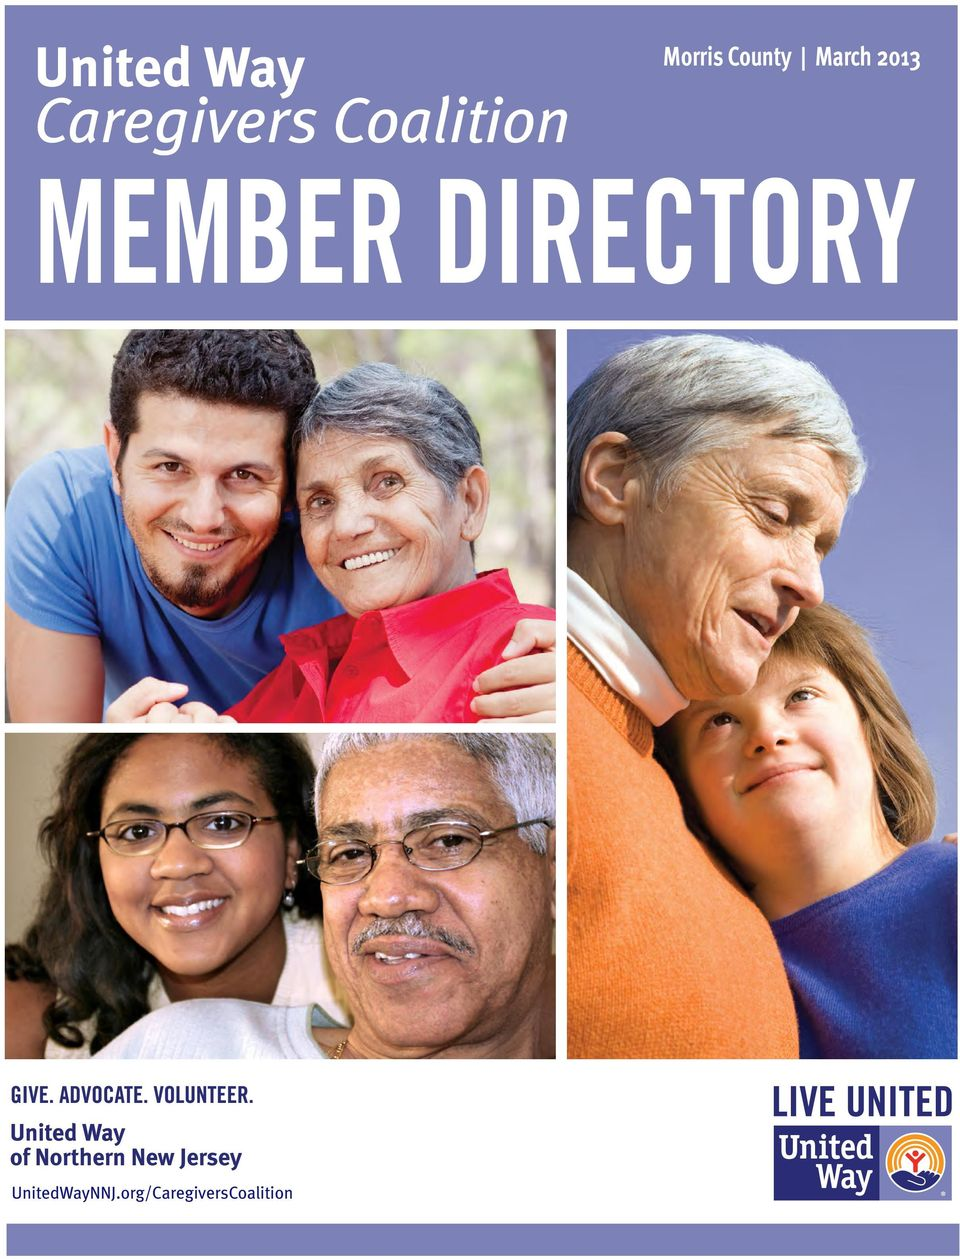 March 2013 MEMBER DIRECTORY